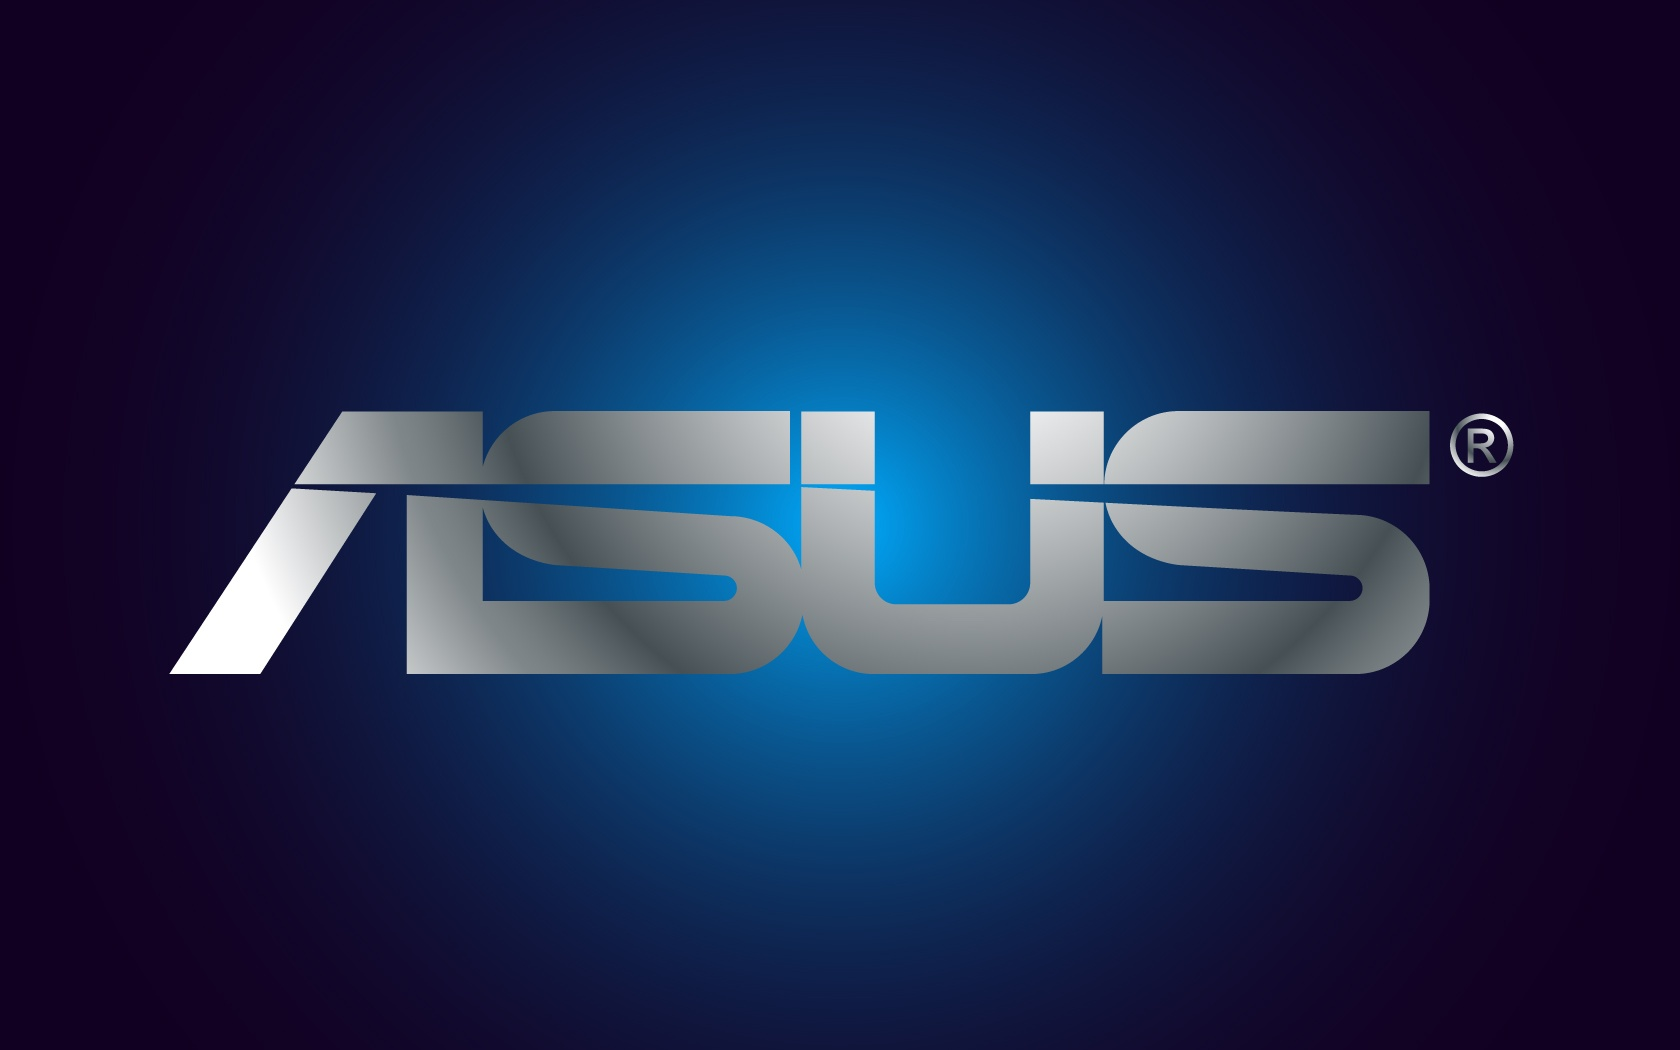 Hd Wallpaper For Asus Zenfone 2: ASUS To Release ZenFone 4 Pro Featuring High-end Flagship